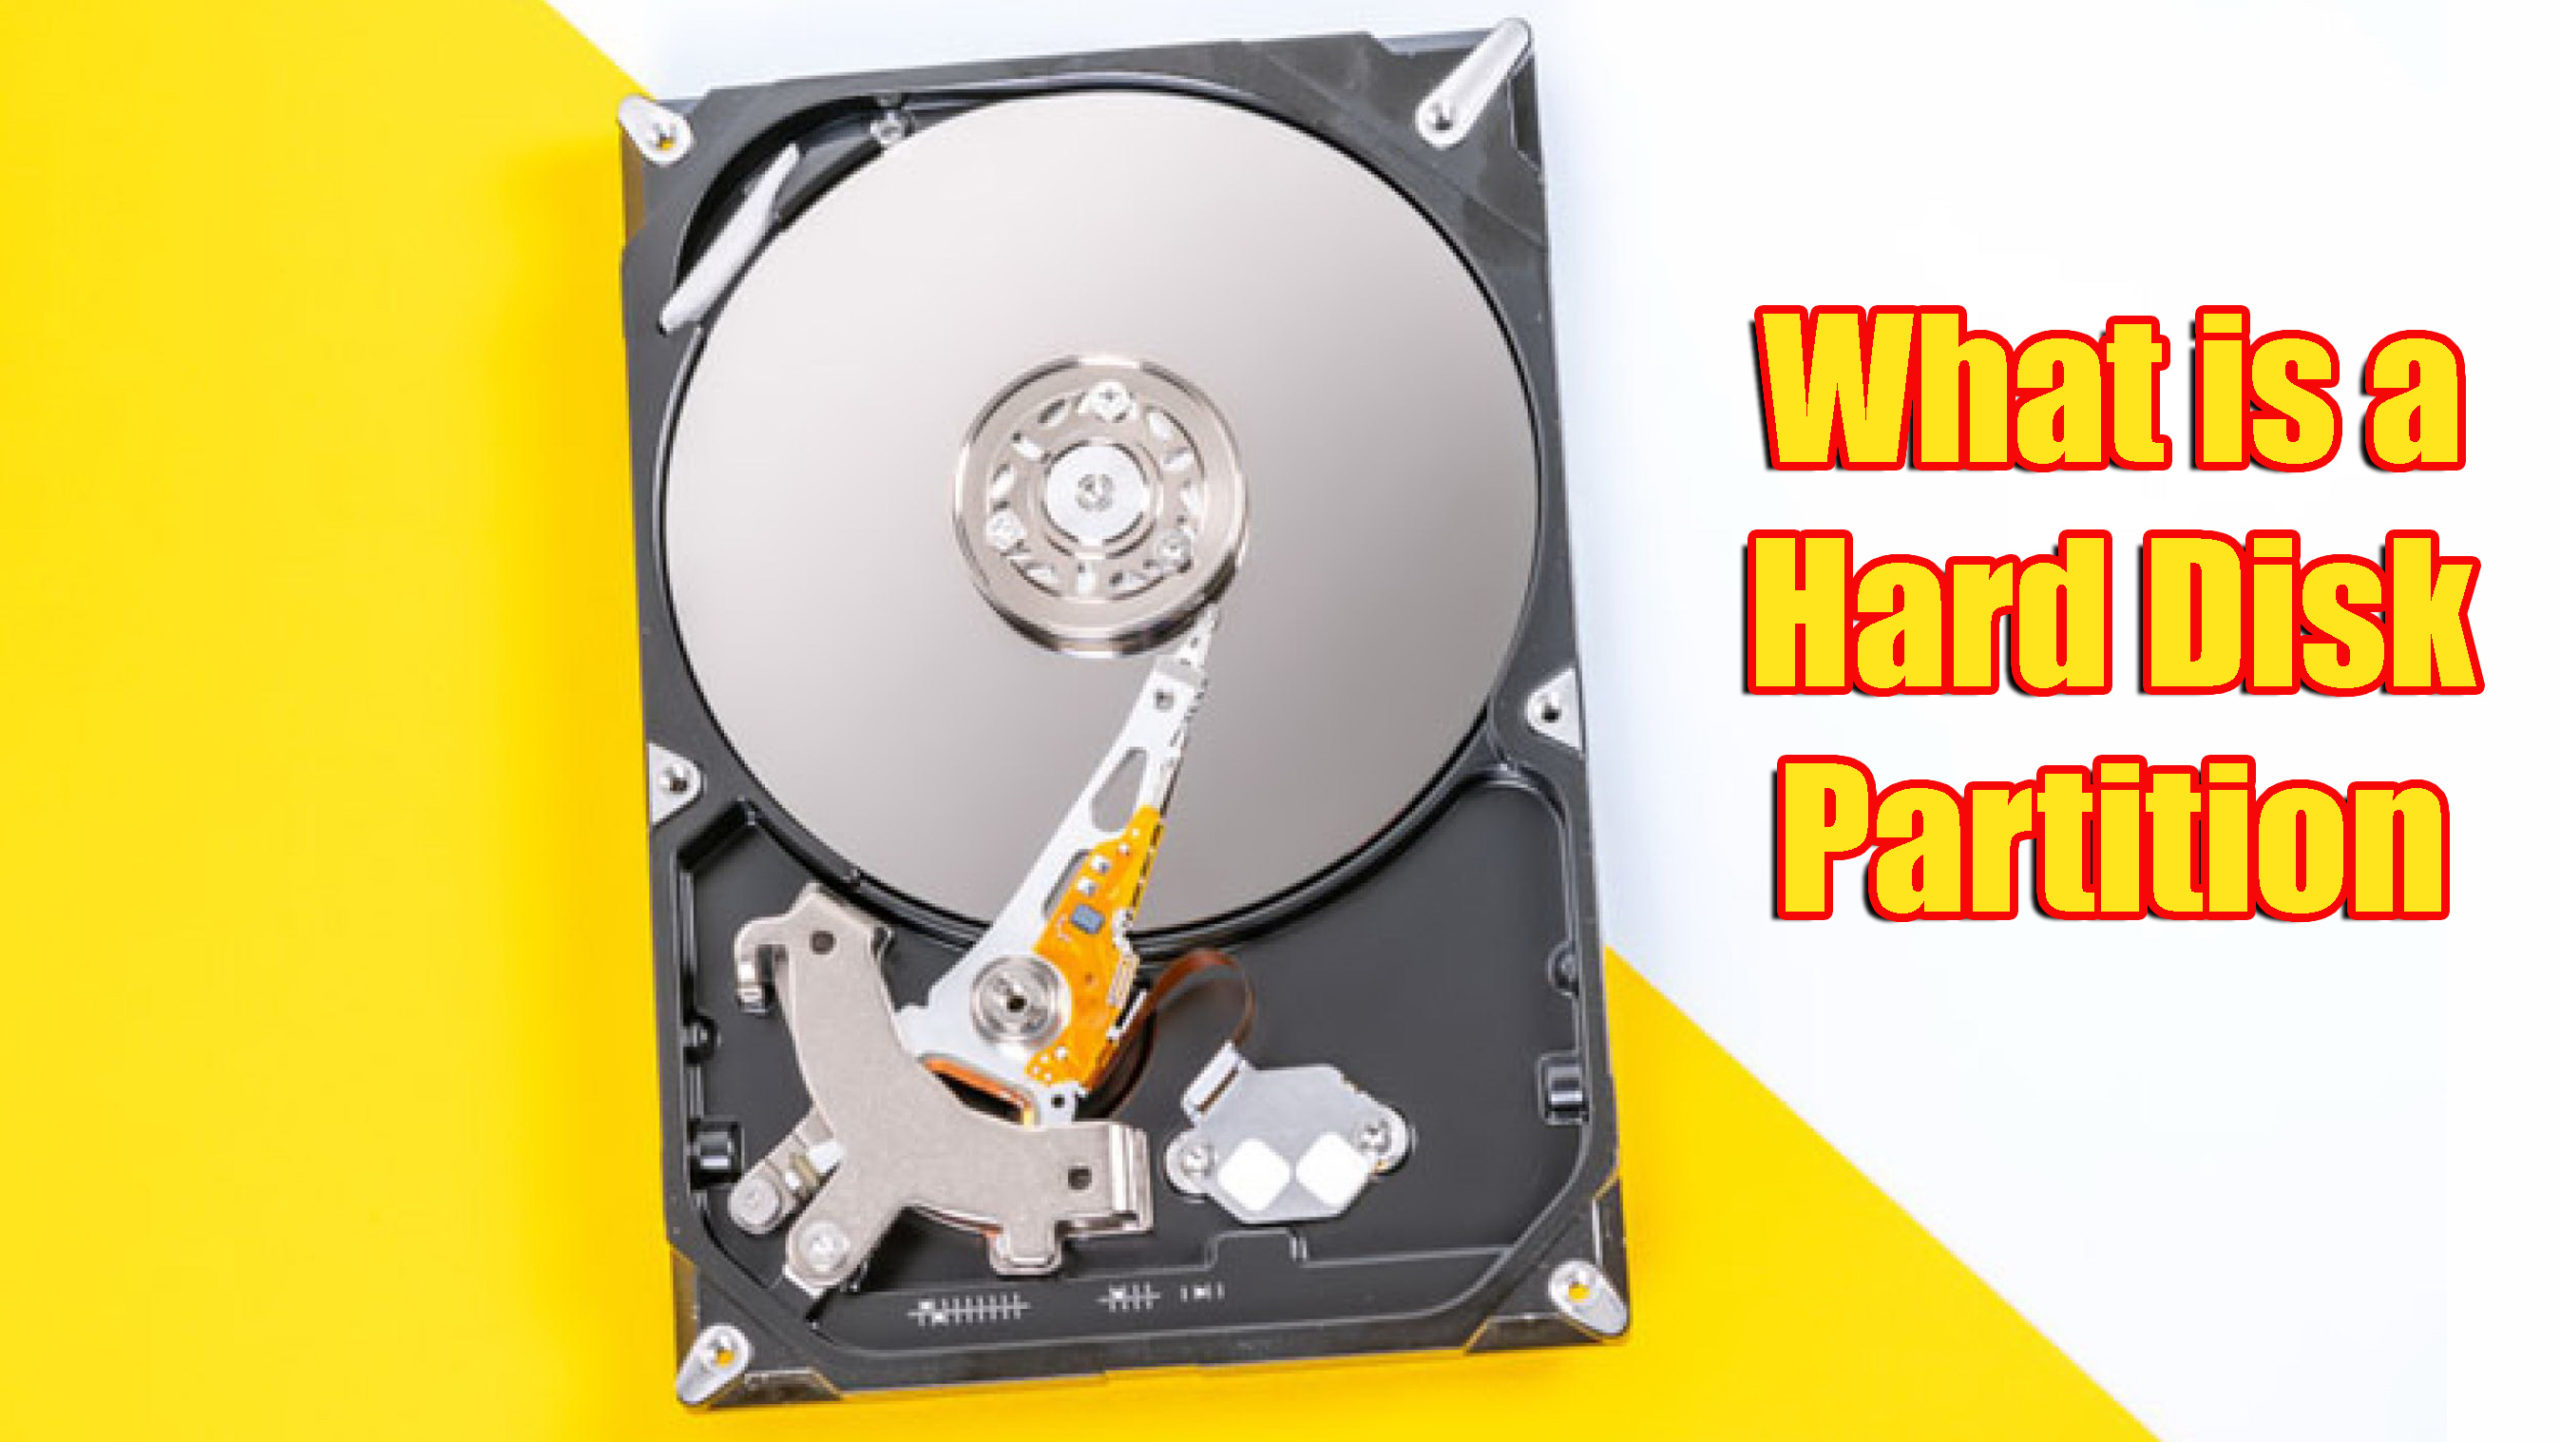 Hard Disk Partition Kya Hai Kaise Kare in Hindi